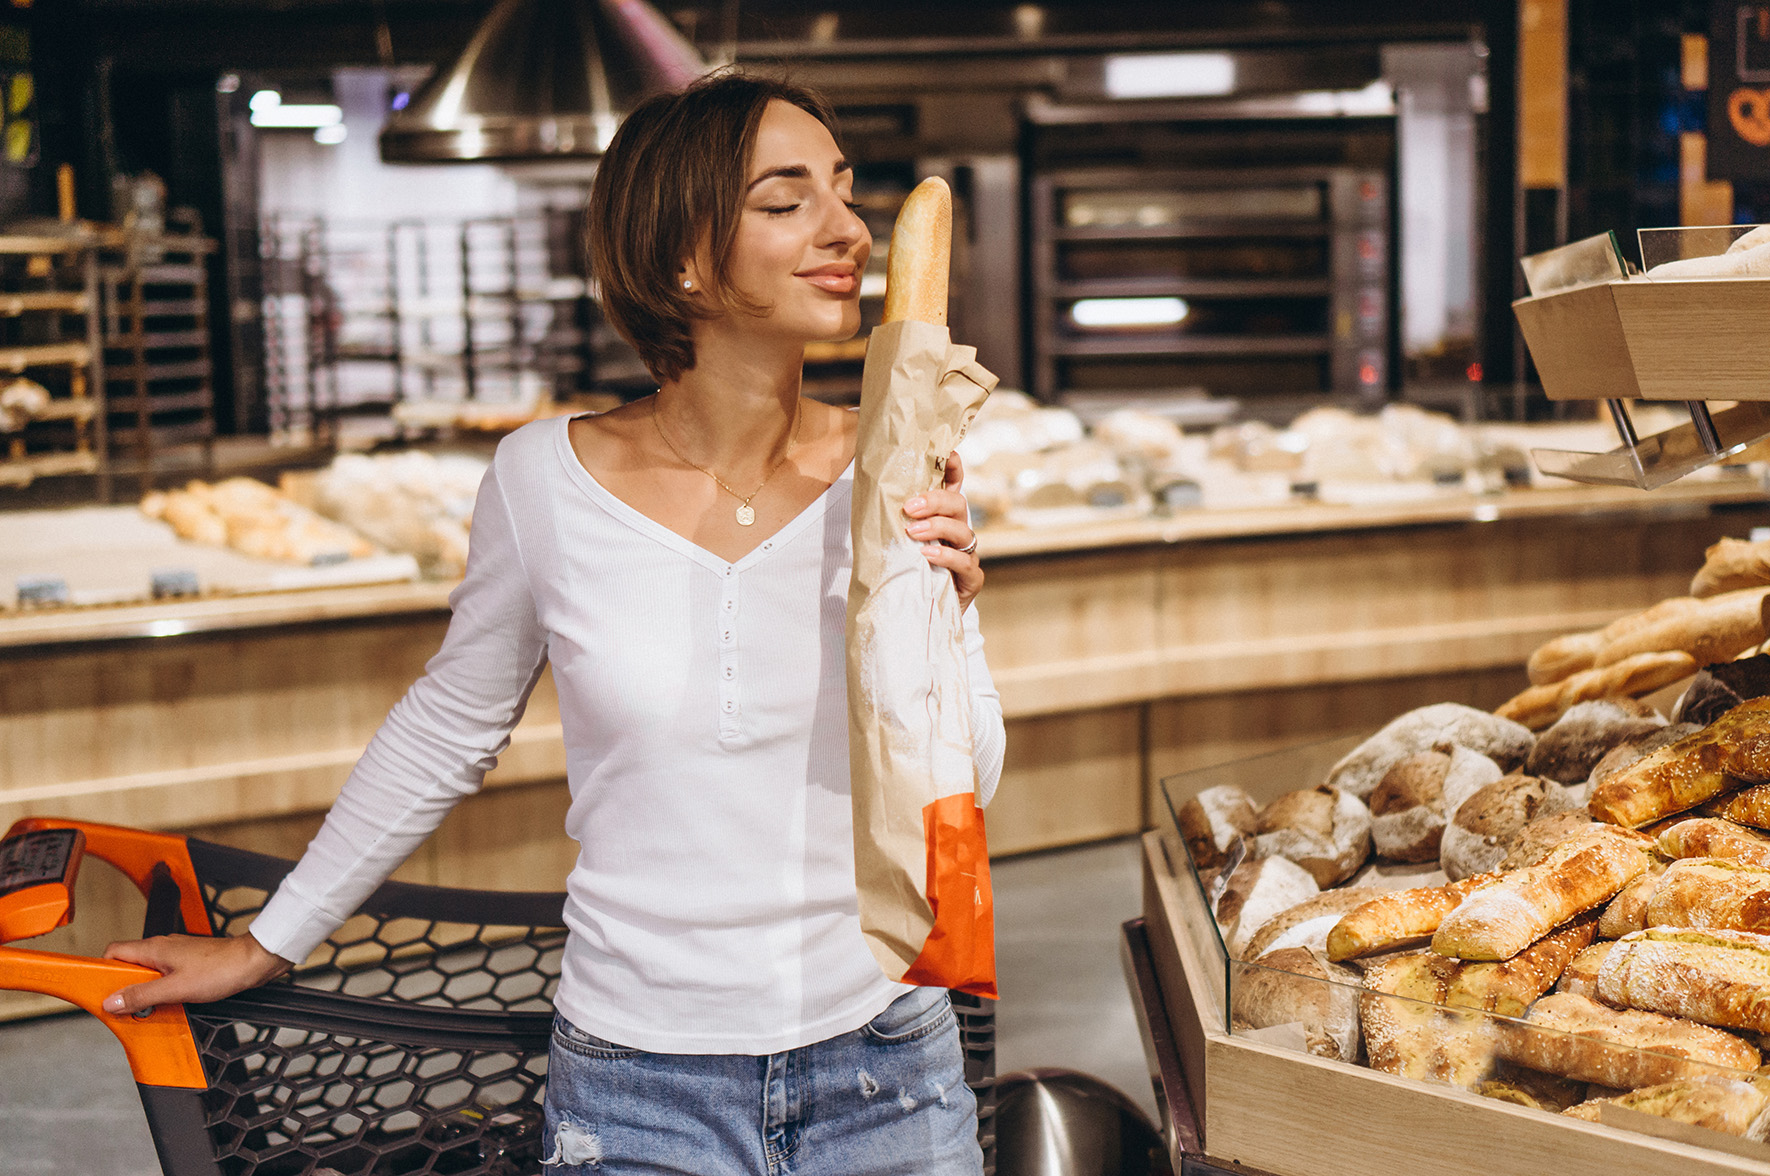 Woman at the grocery store buying fresh bread